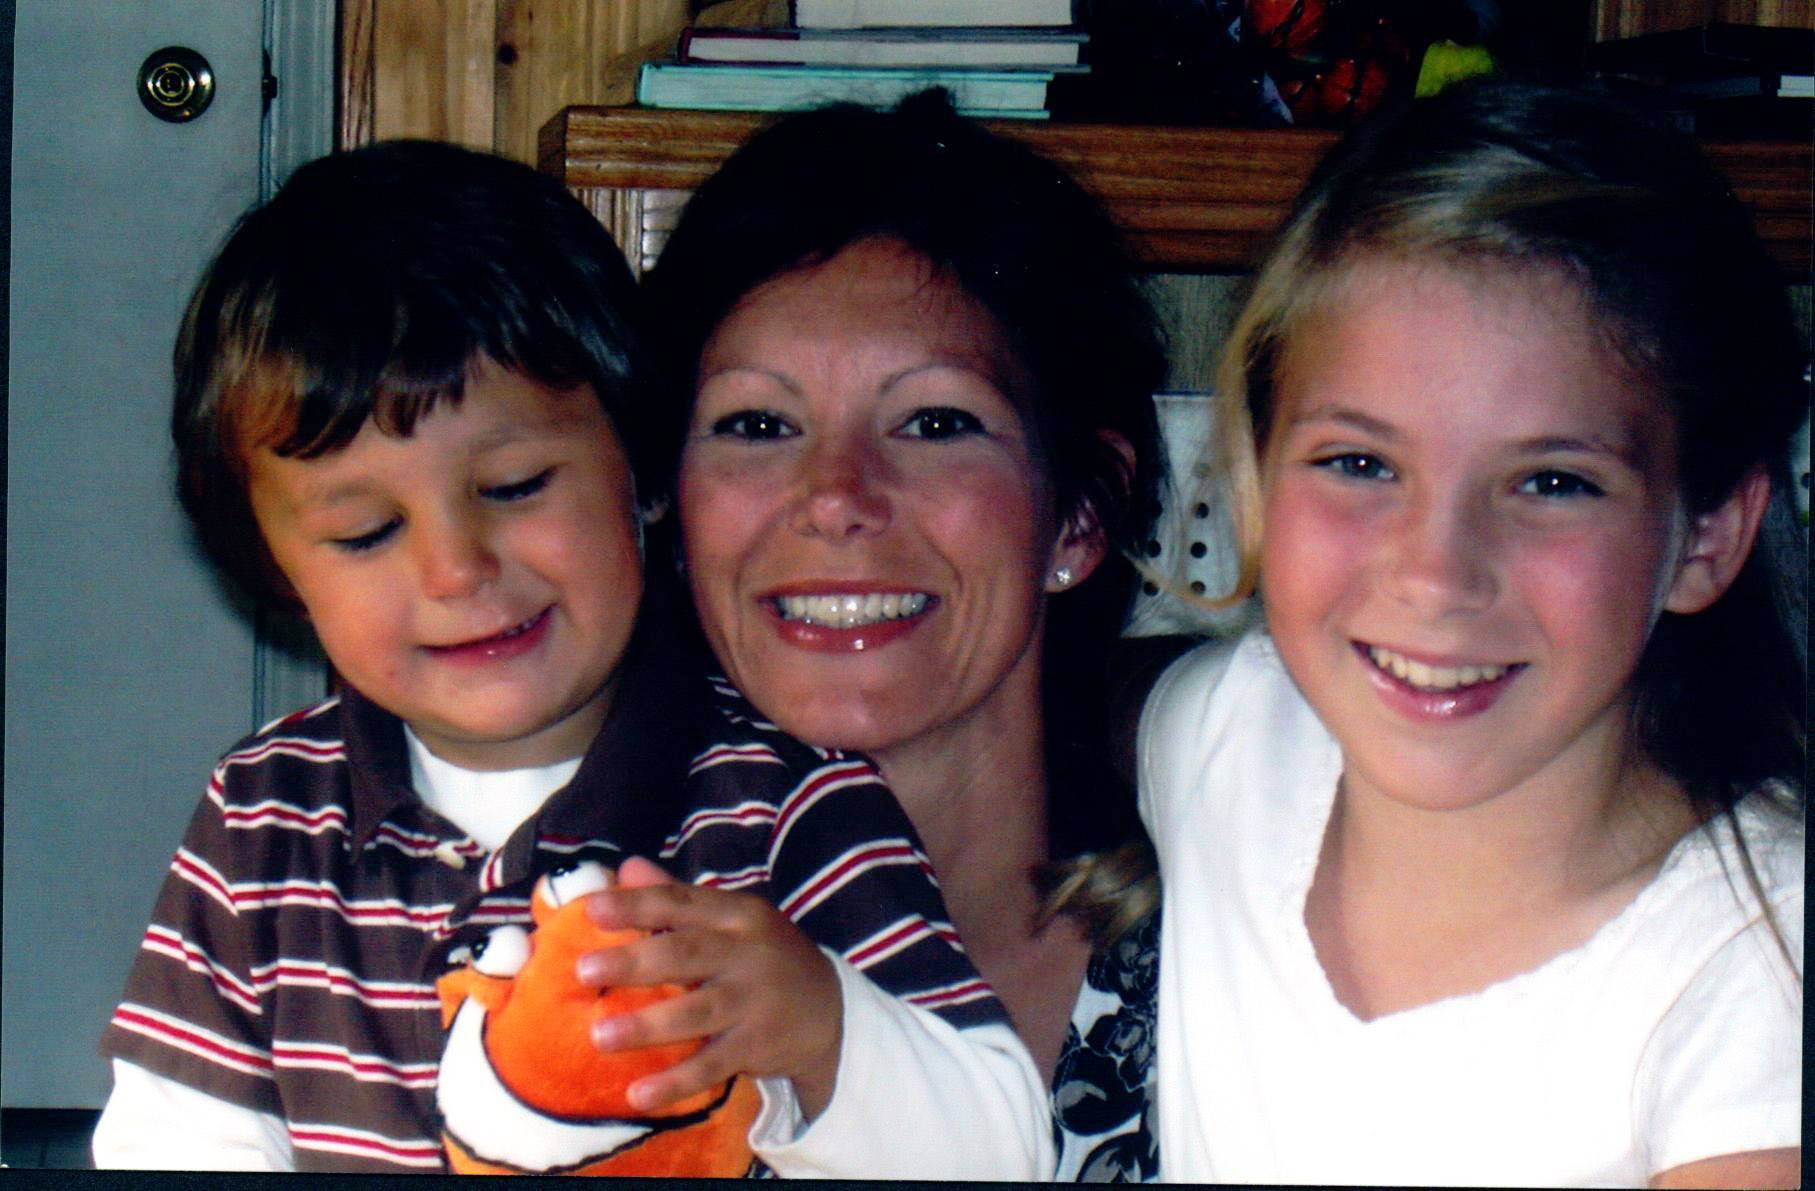 Karen Wessel with her children, Michael and Elizabeth.